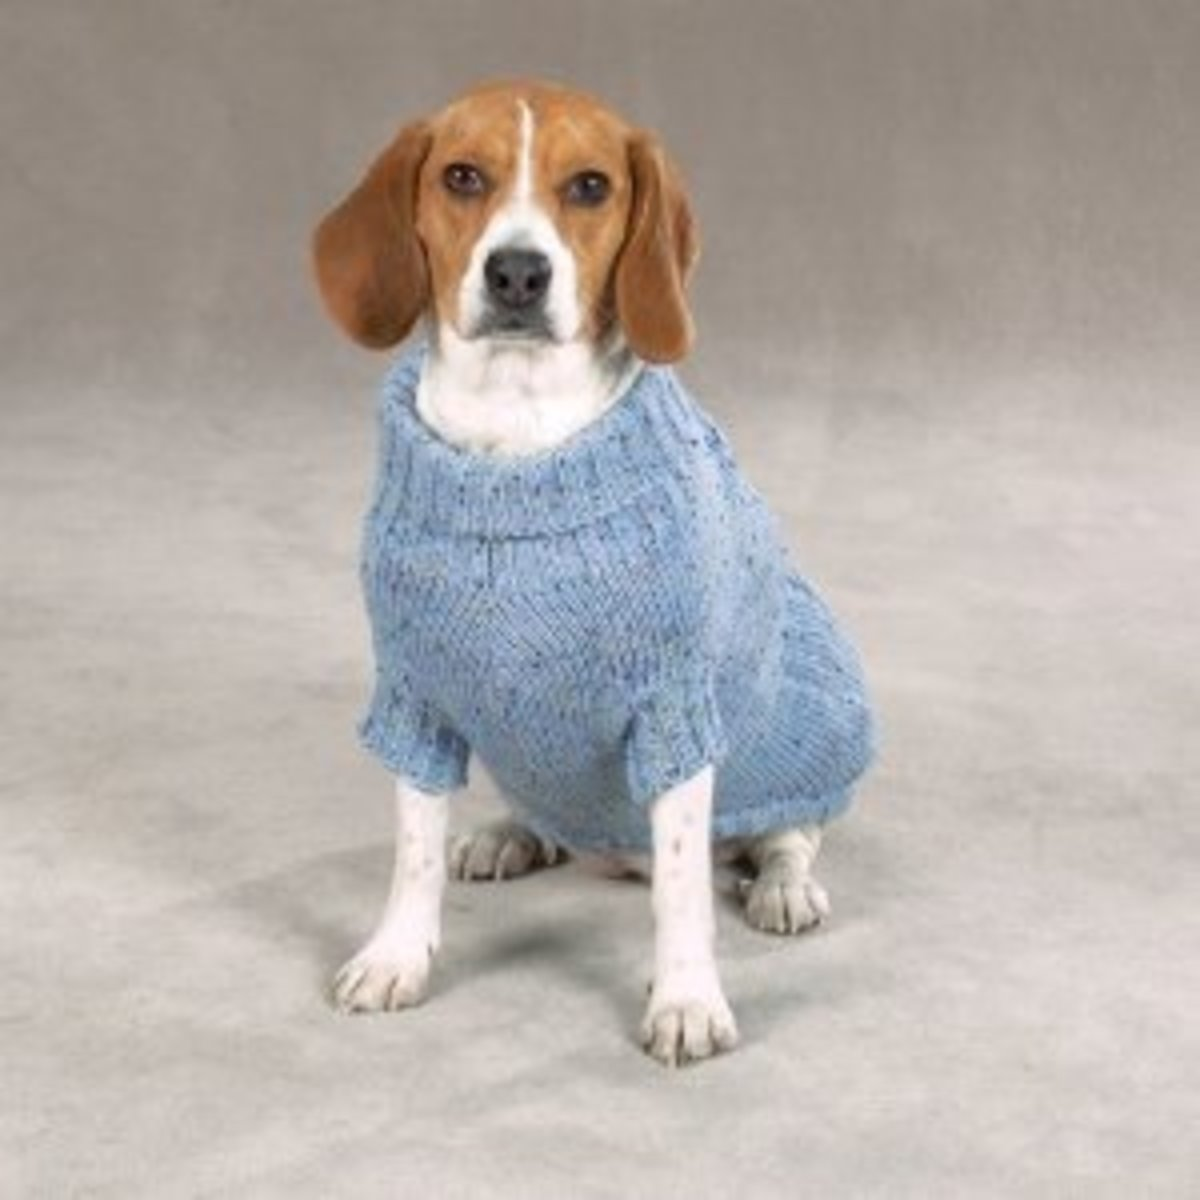 Free Patterns For Dog Coats To Knit : 6 Free Dog Coat Knitting Patterns - Keep your dog Warm and Cozy with a New Coat!